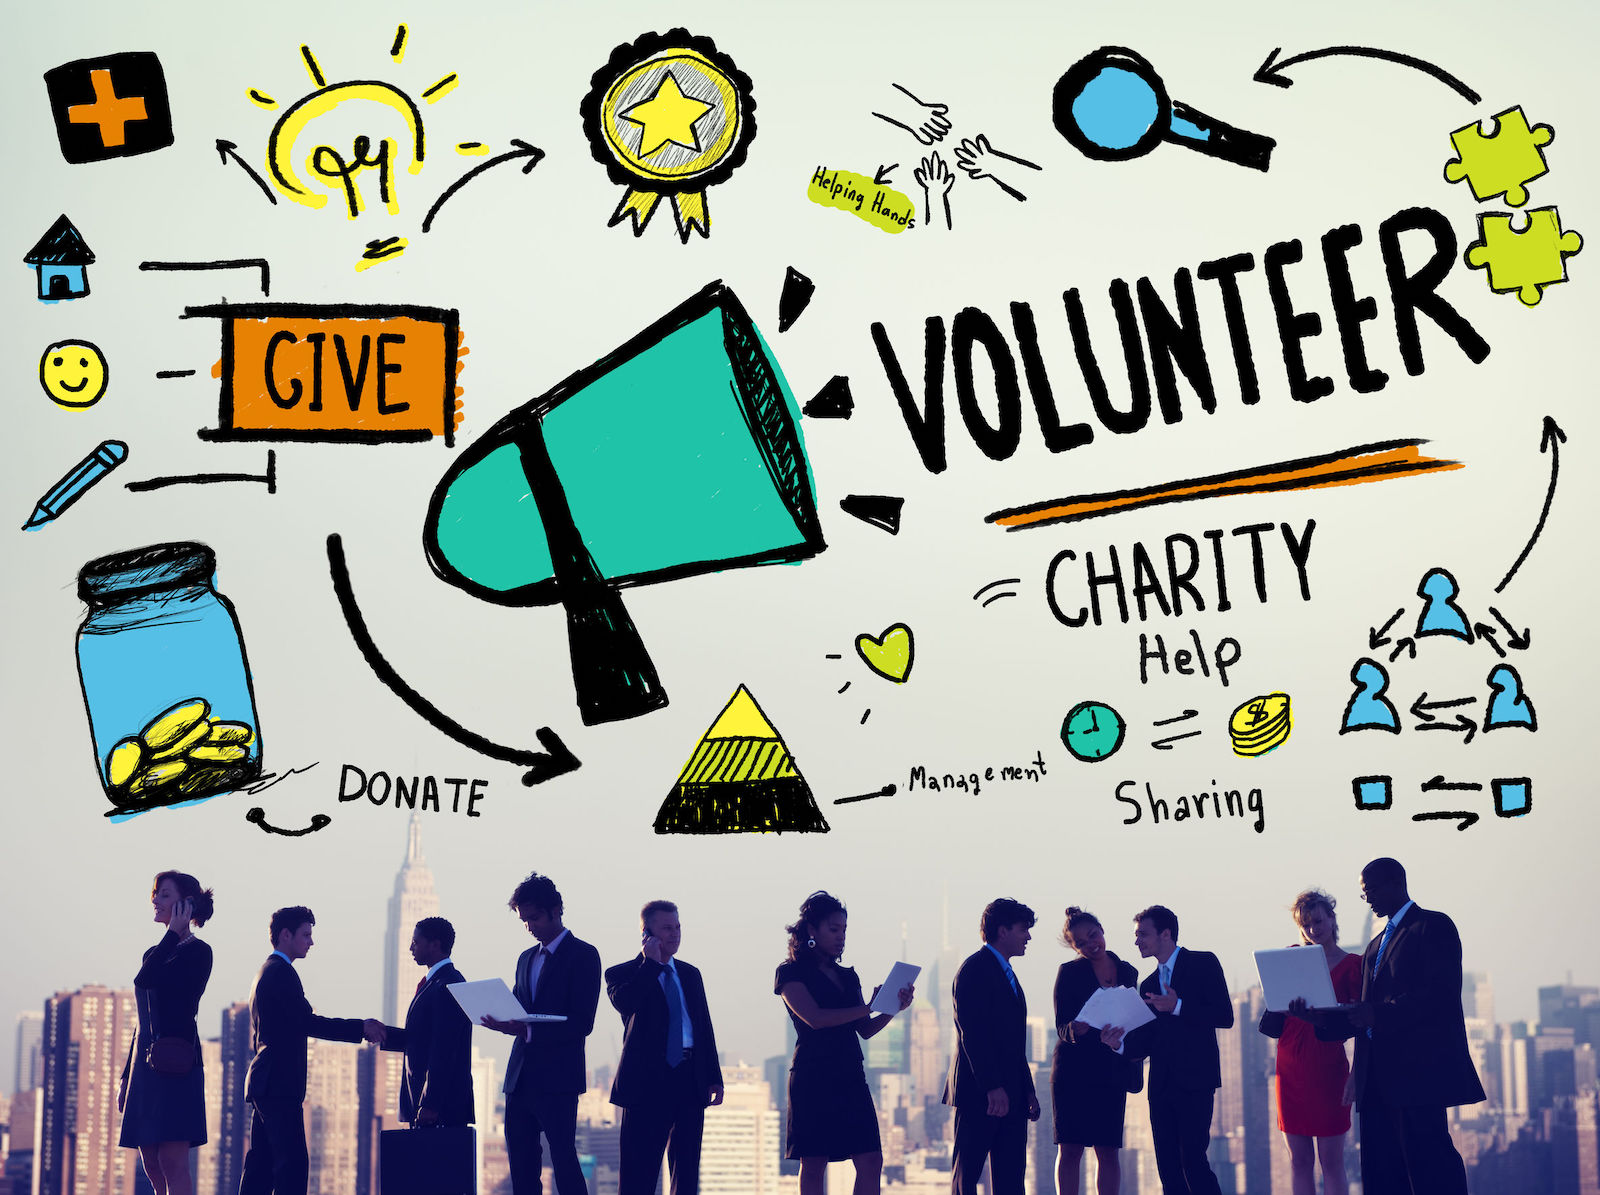 42955768 - volunteer charity help sharing giving donate assisting concept